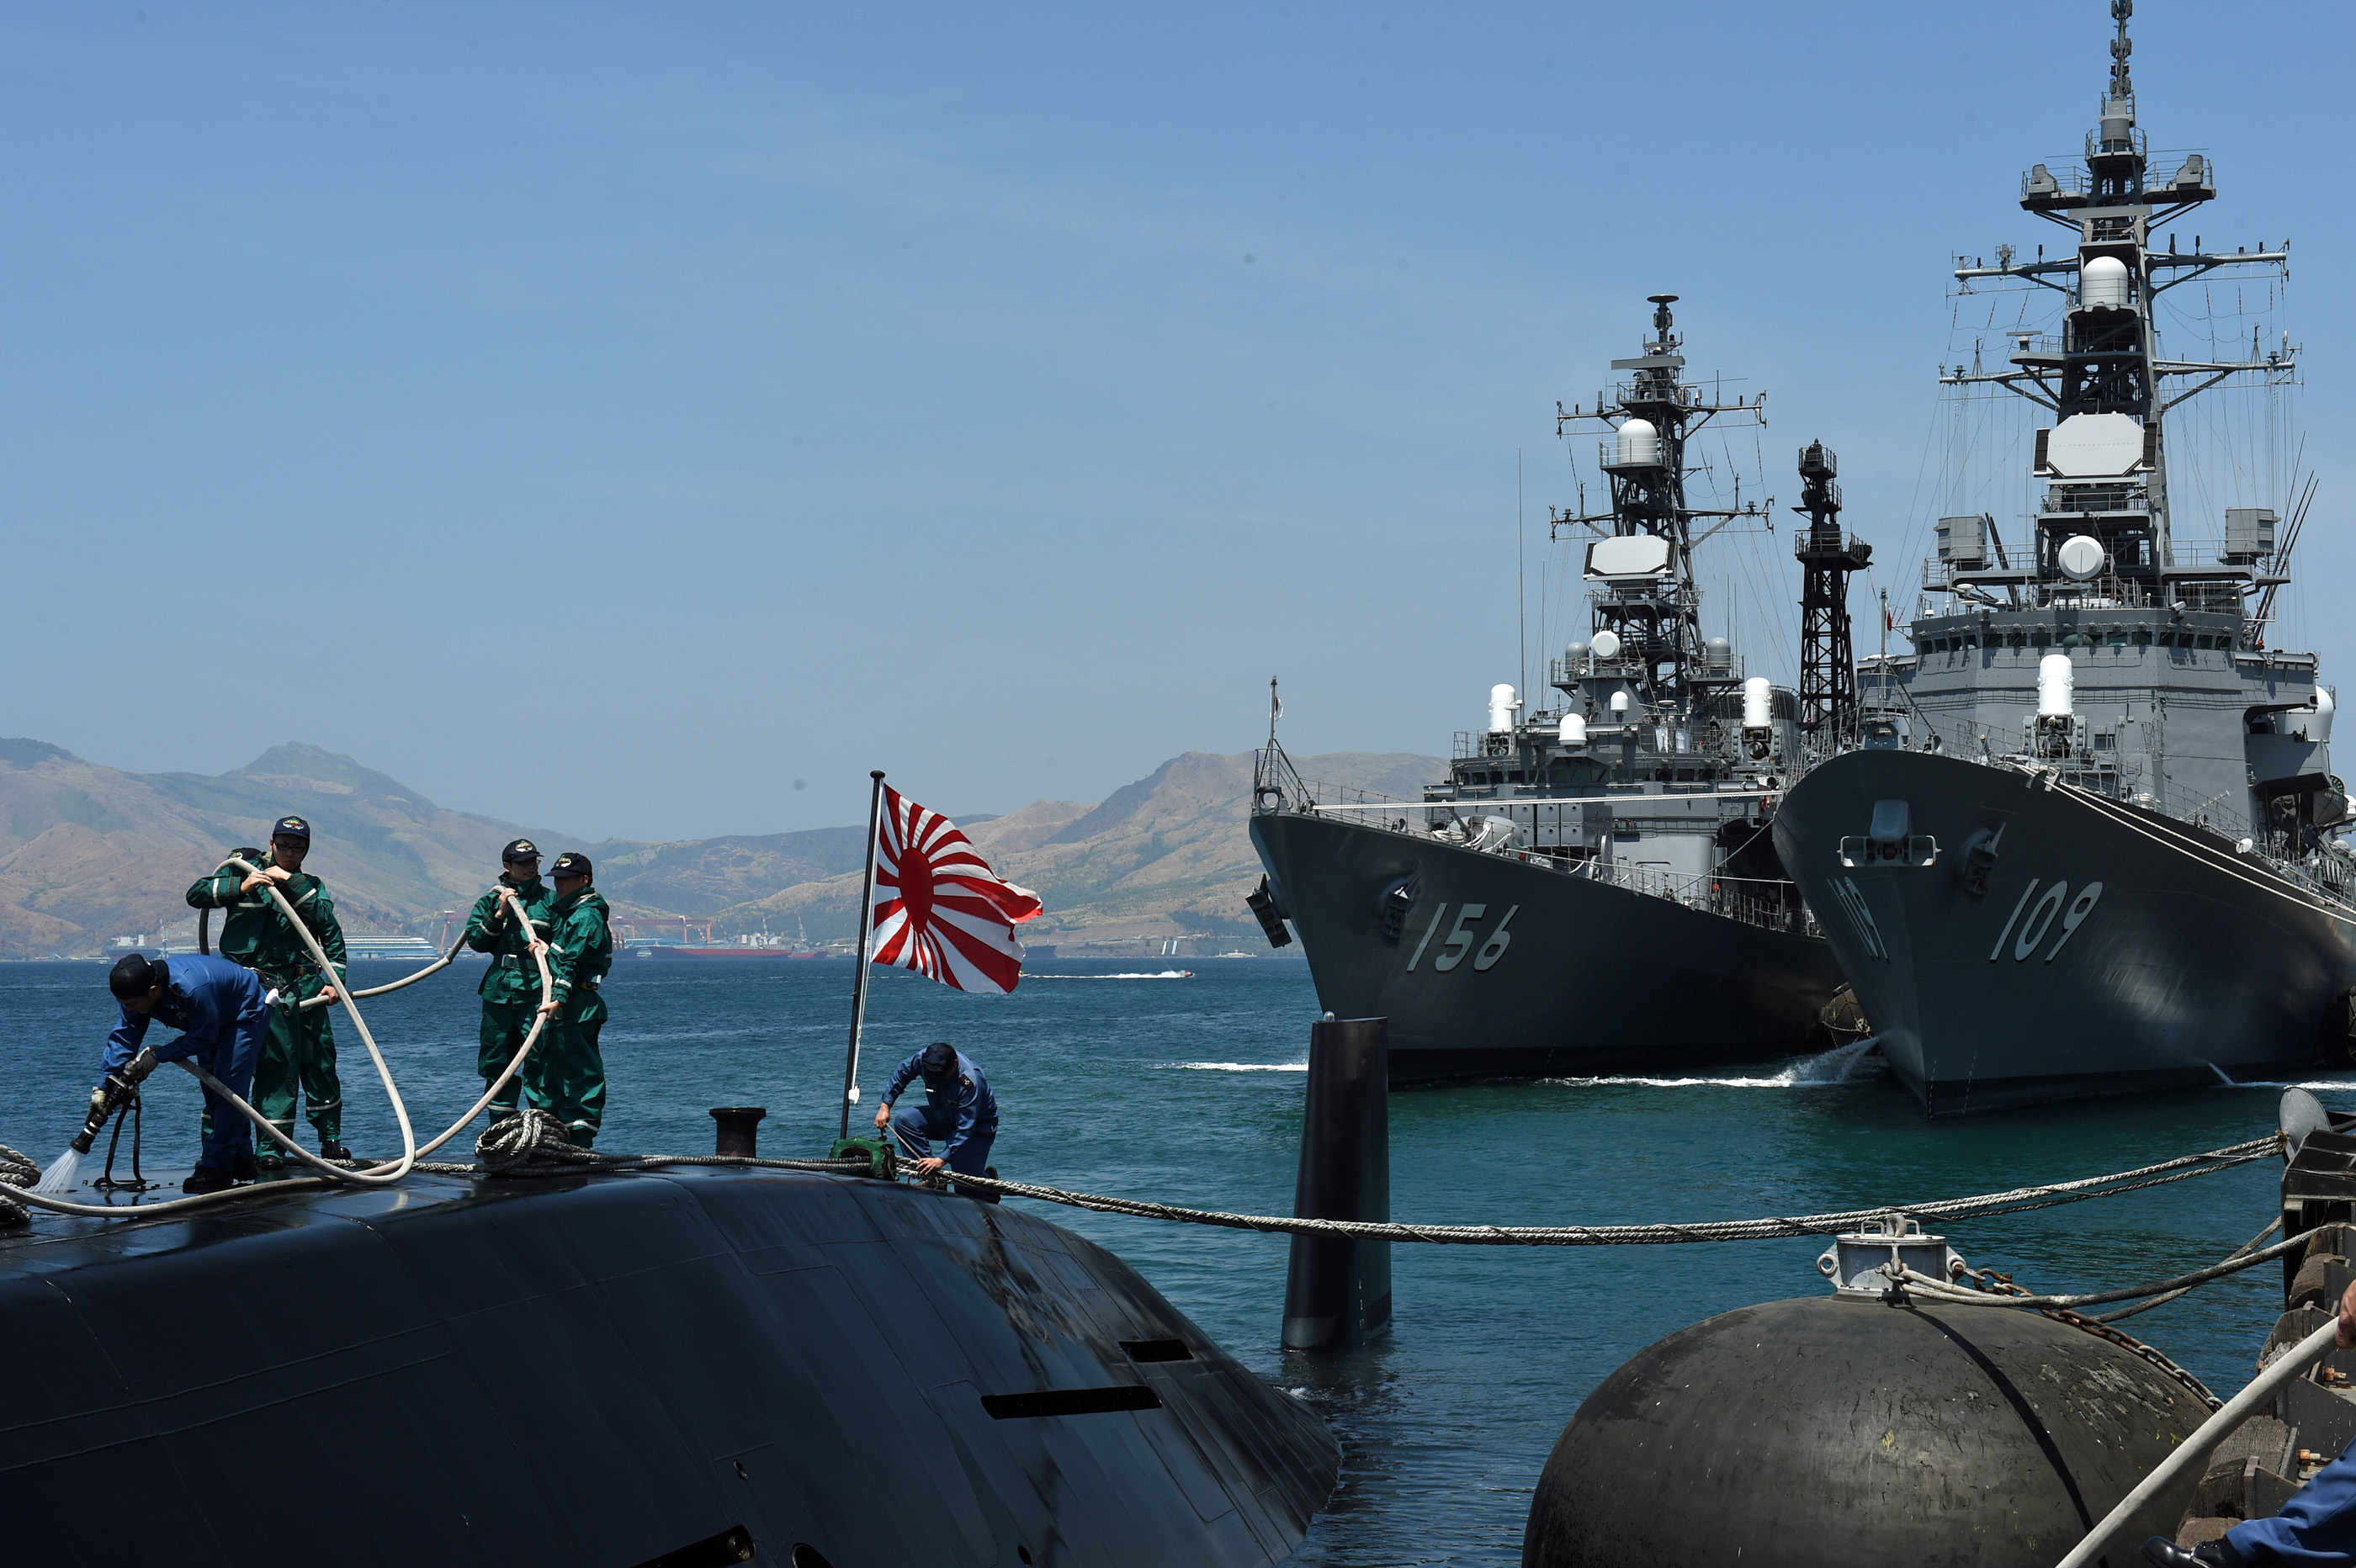 Two Japanese destroyers and a submarine dock at a Philippine port April 3, 2016, near disputed South China Sea waters, where Beijing's increasingly assertive behavior has sparked global concern. (TED ALJIBE/AFP/Getty Images)